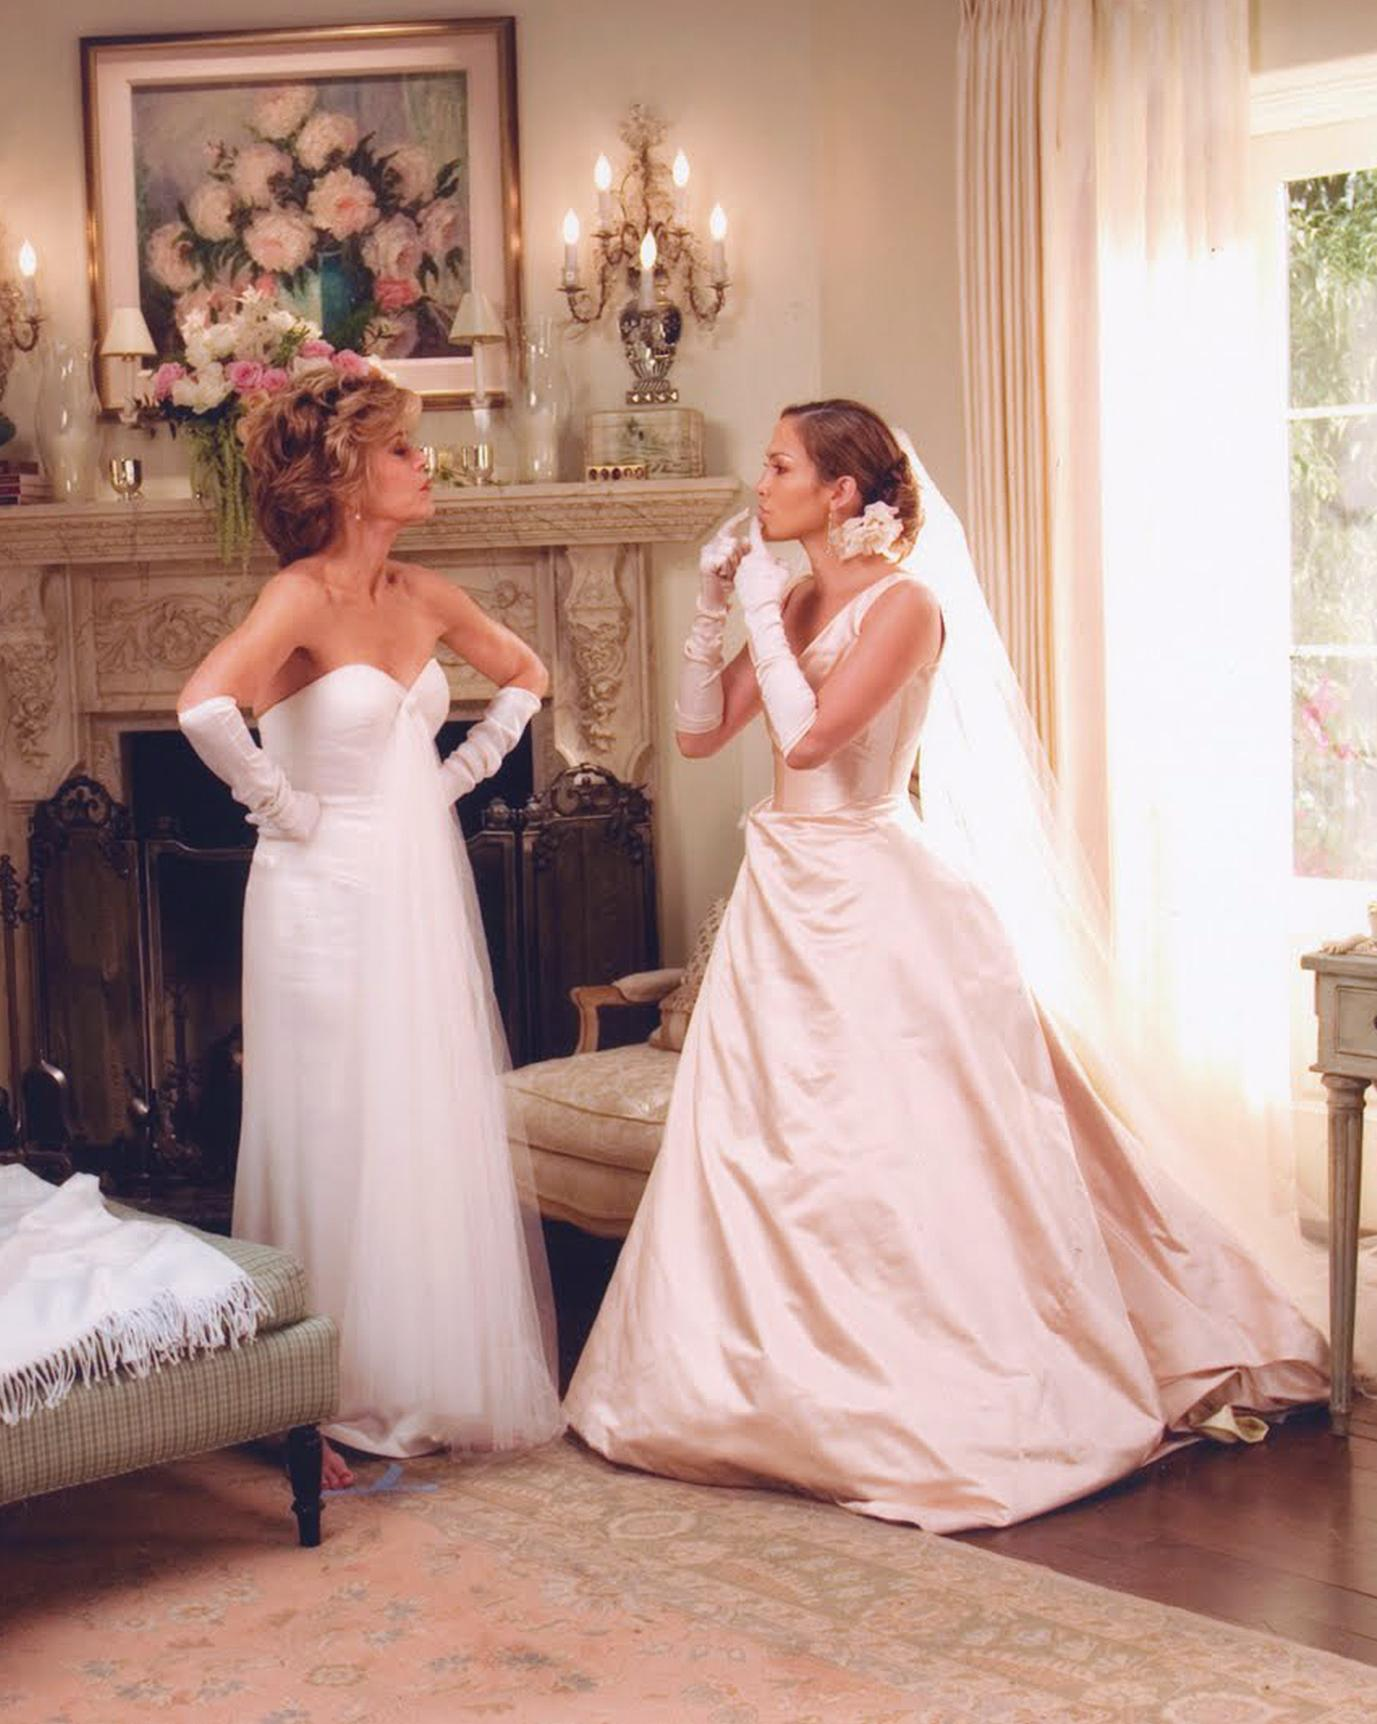 monster-in-law-0515